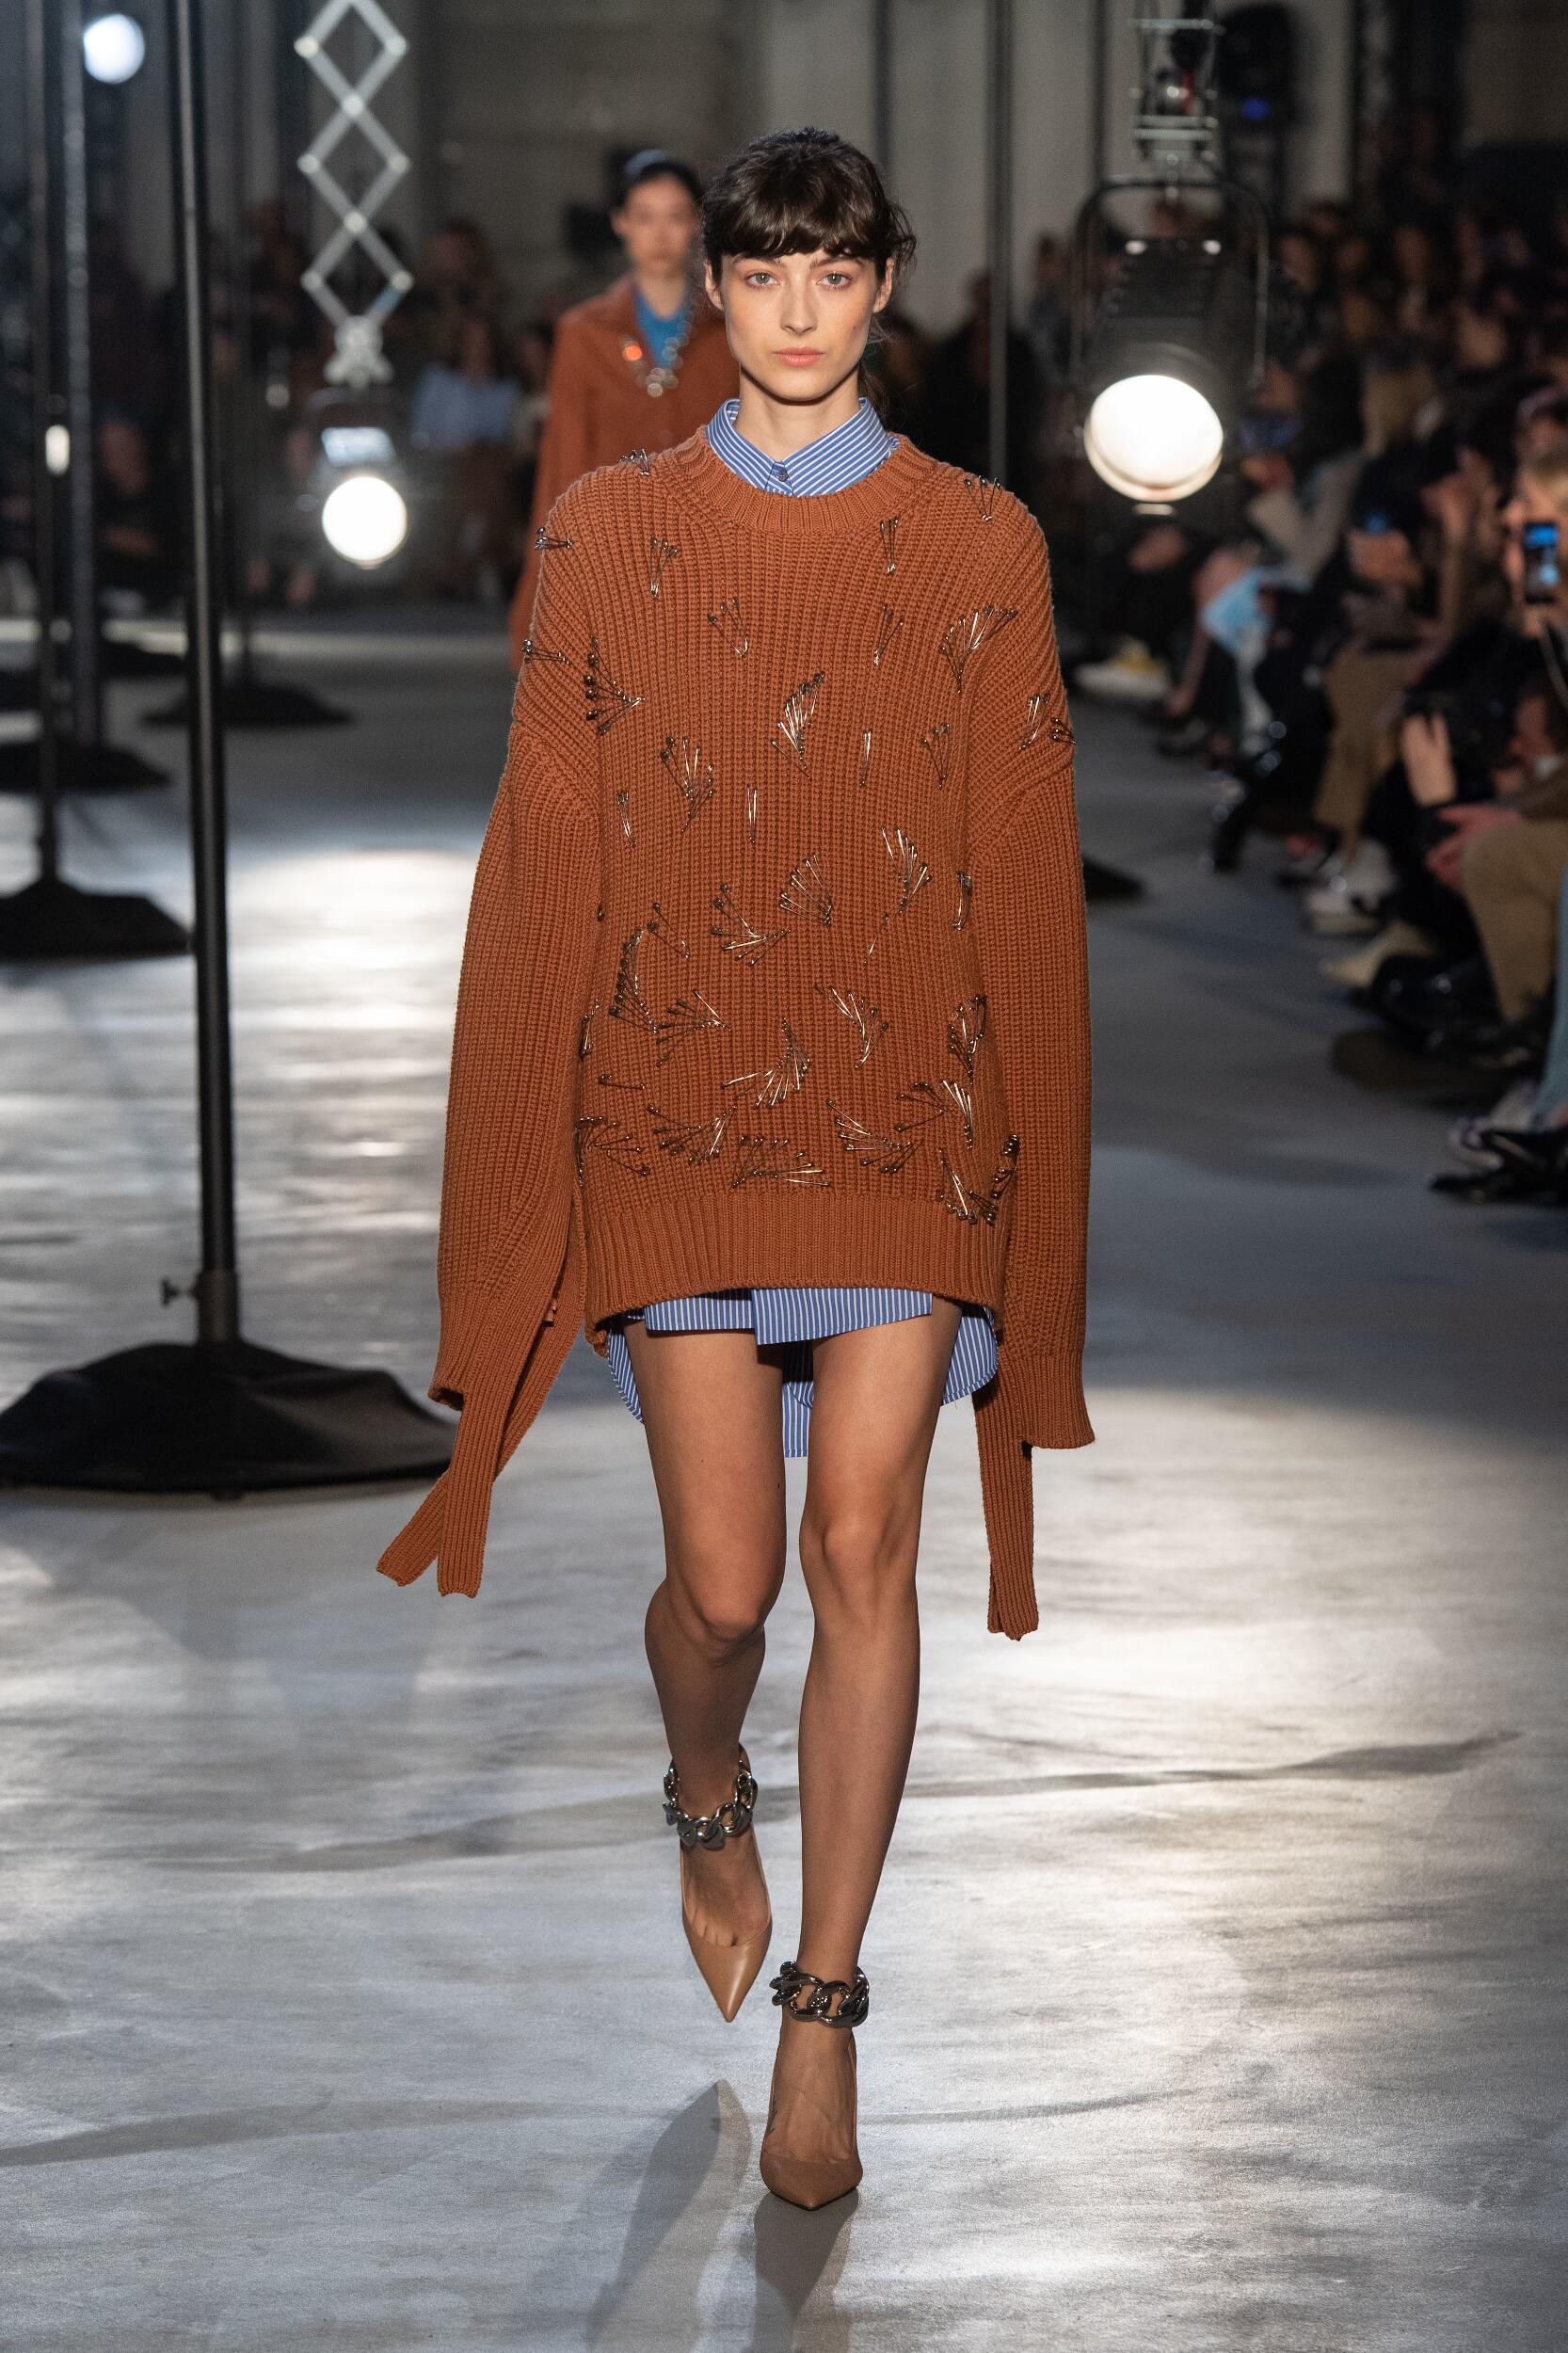 N°21 Fall 2020 Catwalk